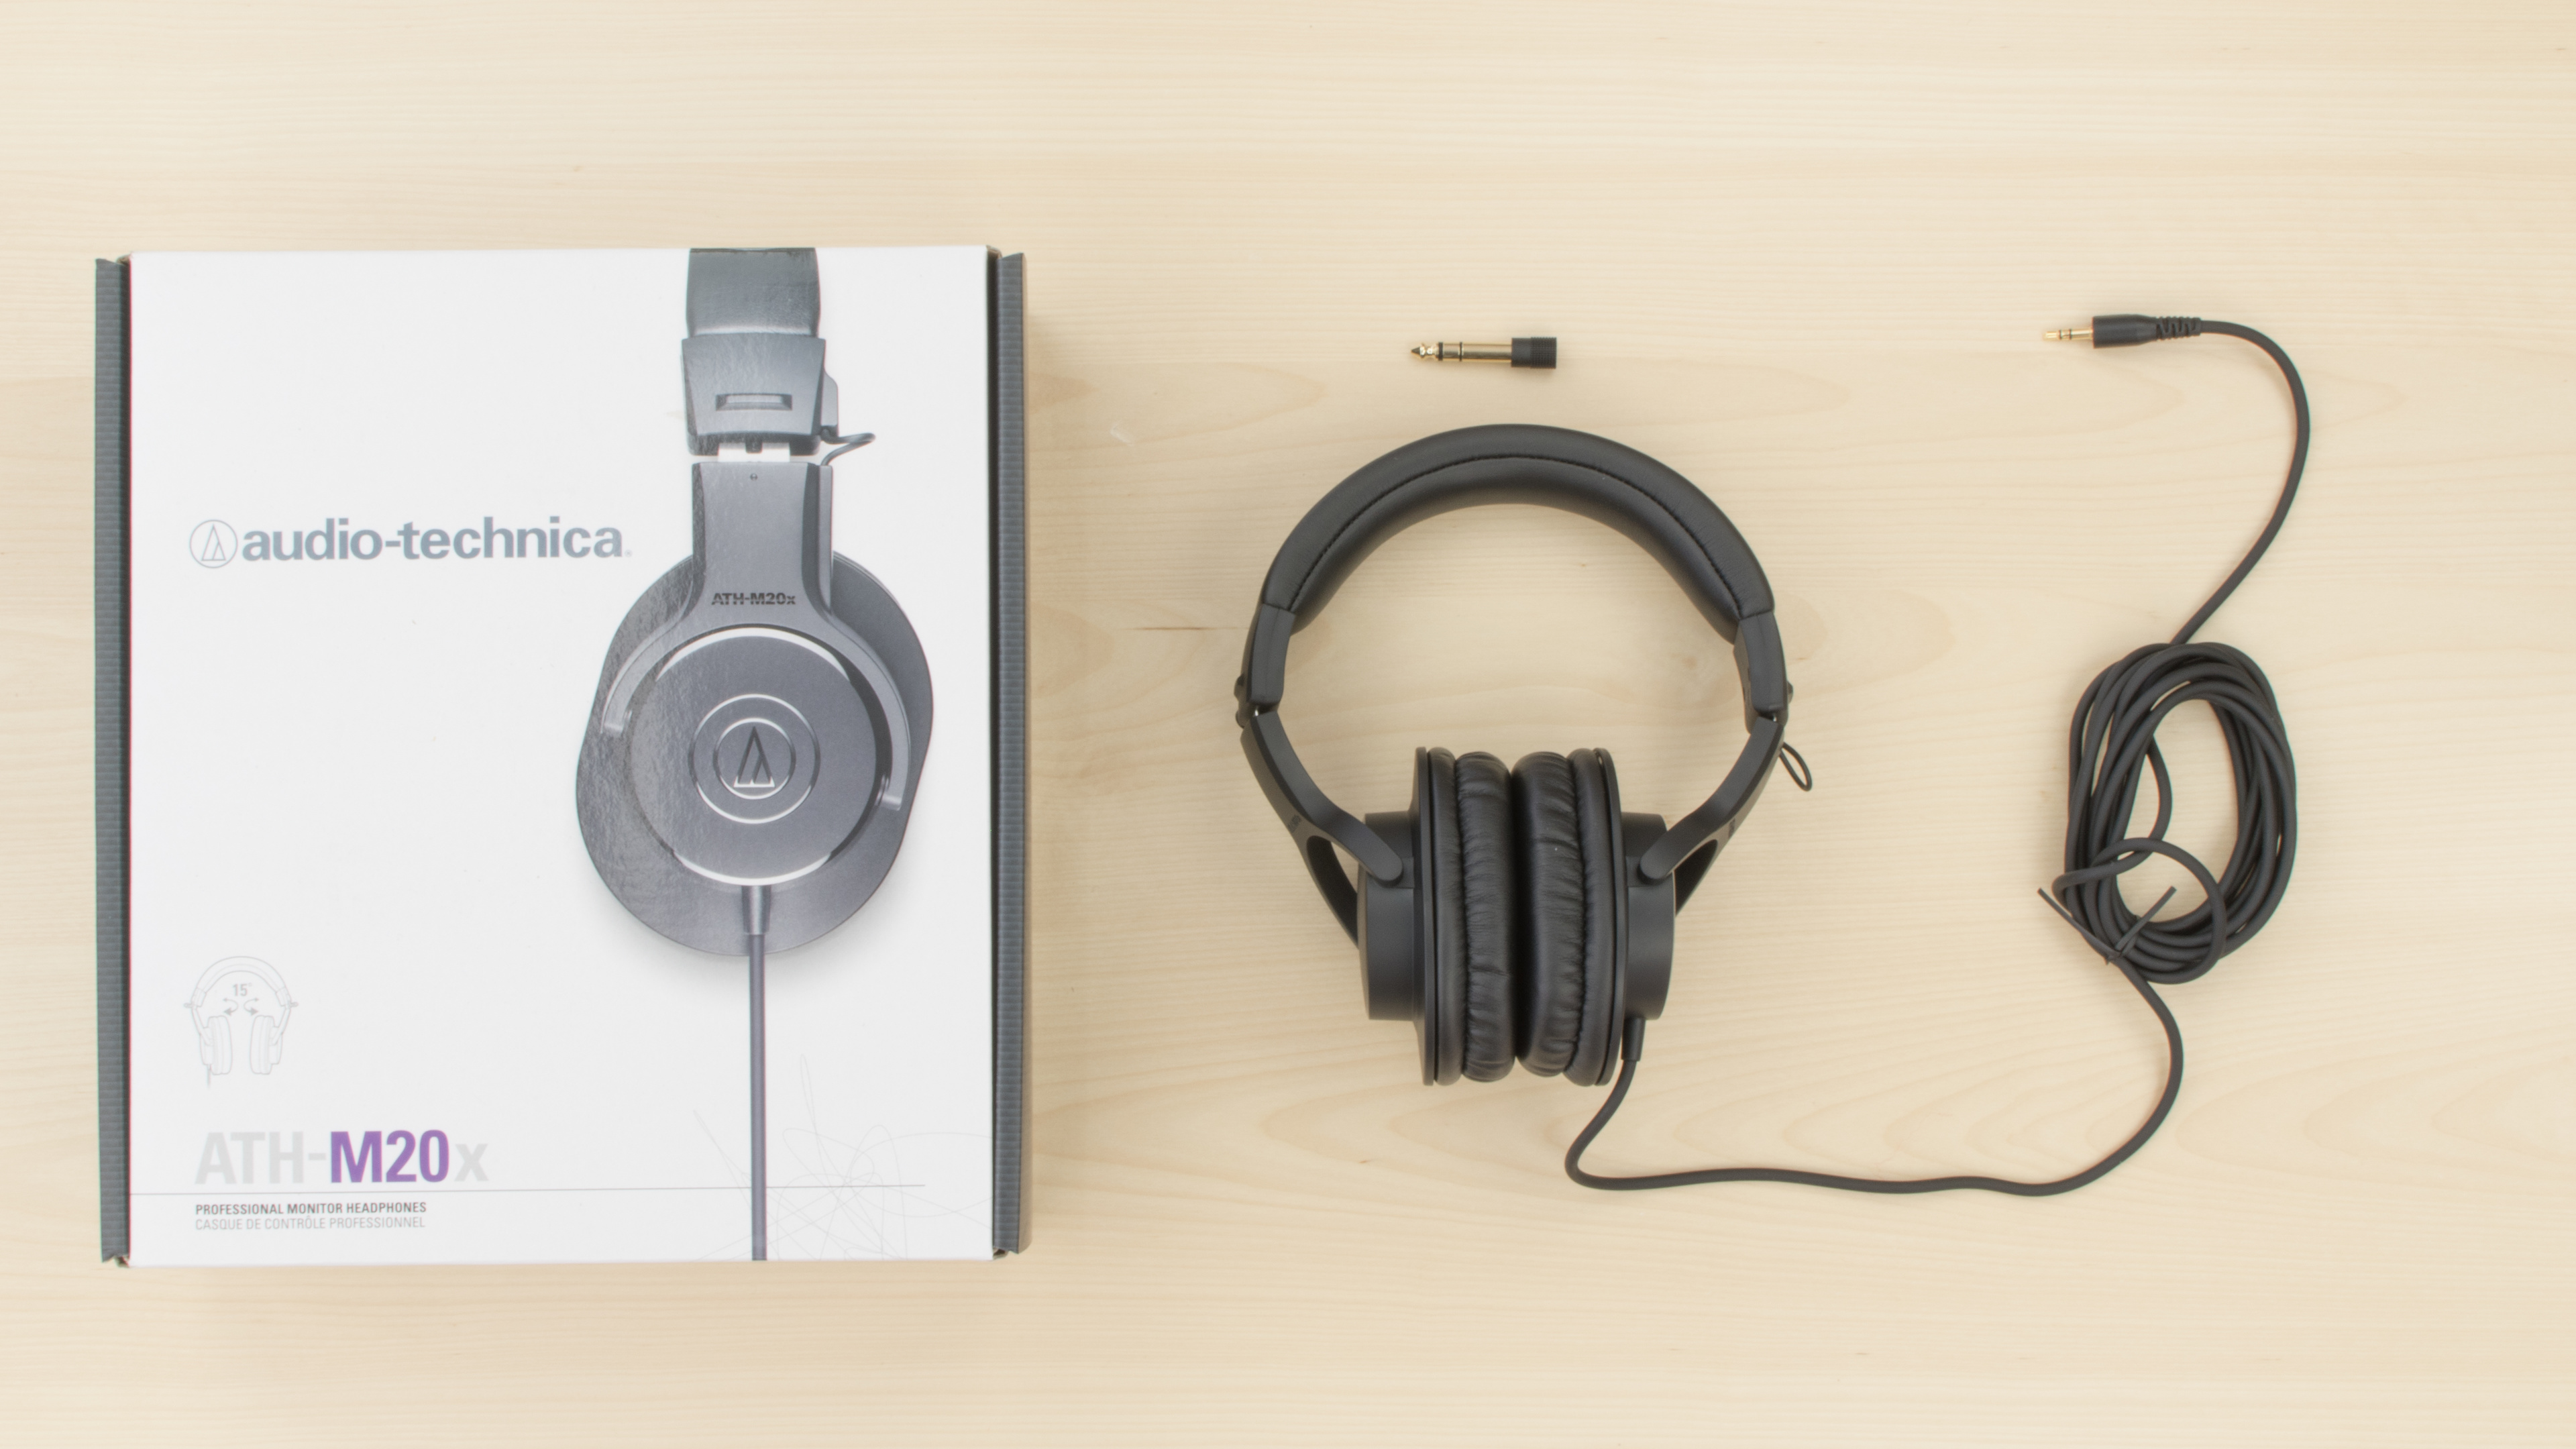 Audio Technica Ath M20x Professional Monitor Review M40x Monitoring Headphone In The Box Picture